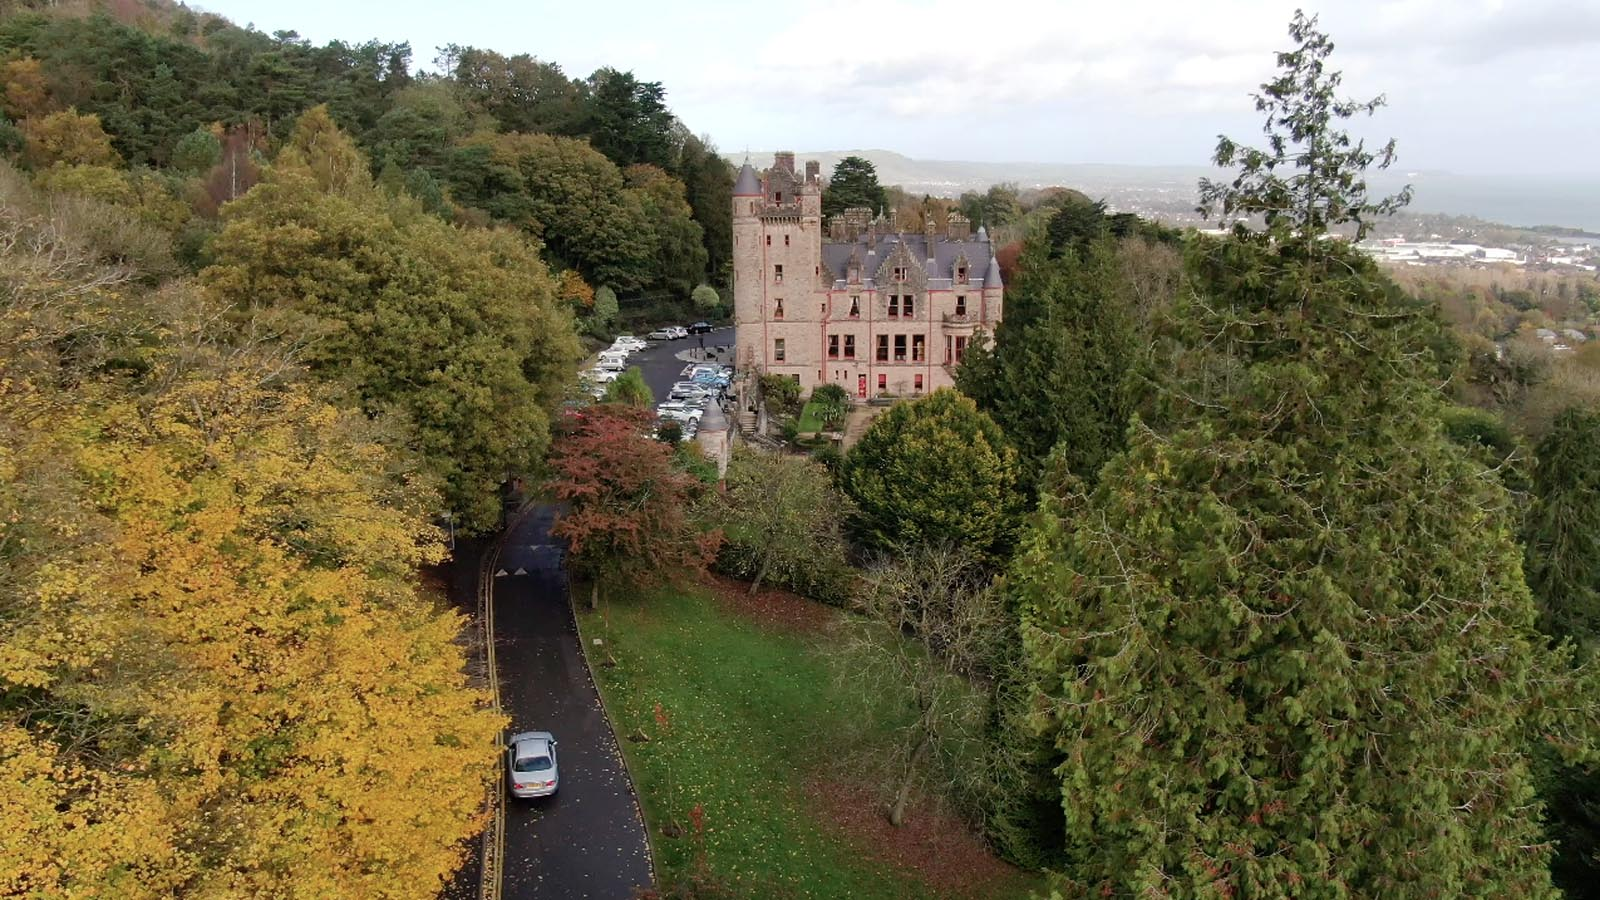 Photo: Commercial, residential, property drone photography and video Dublin, Wicklow, Monaghan, Cavan, Ireland portfolio - screenshot 1 of Belfast Castle video